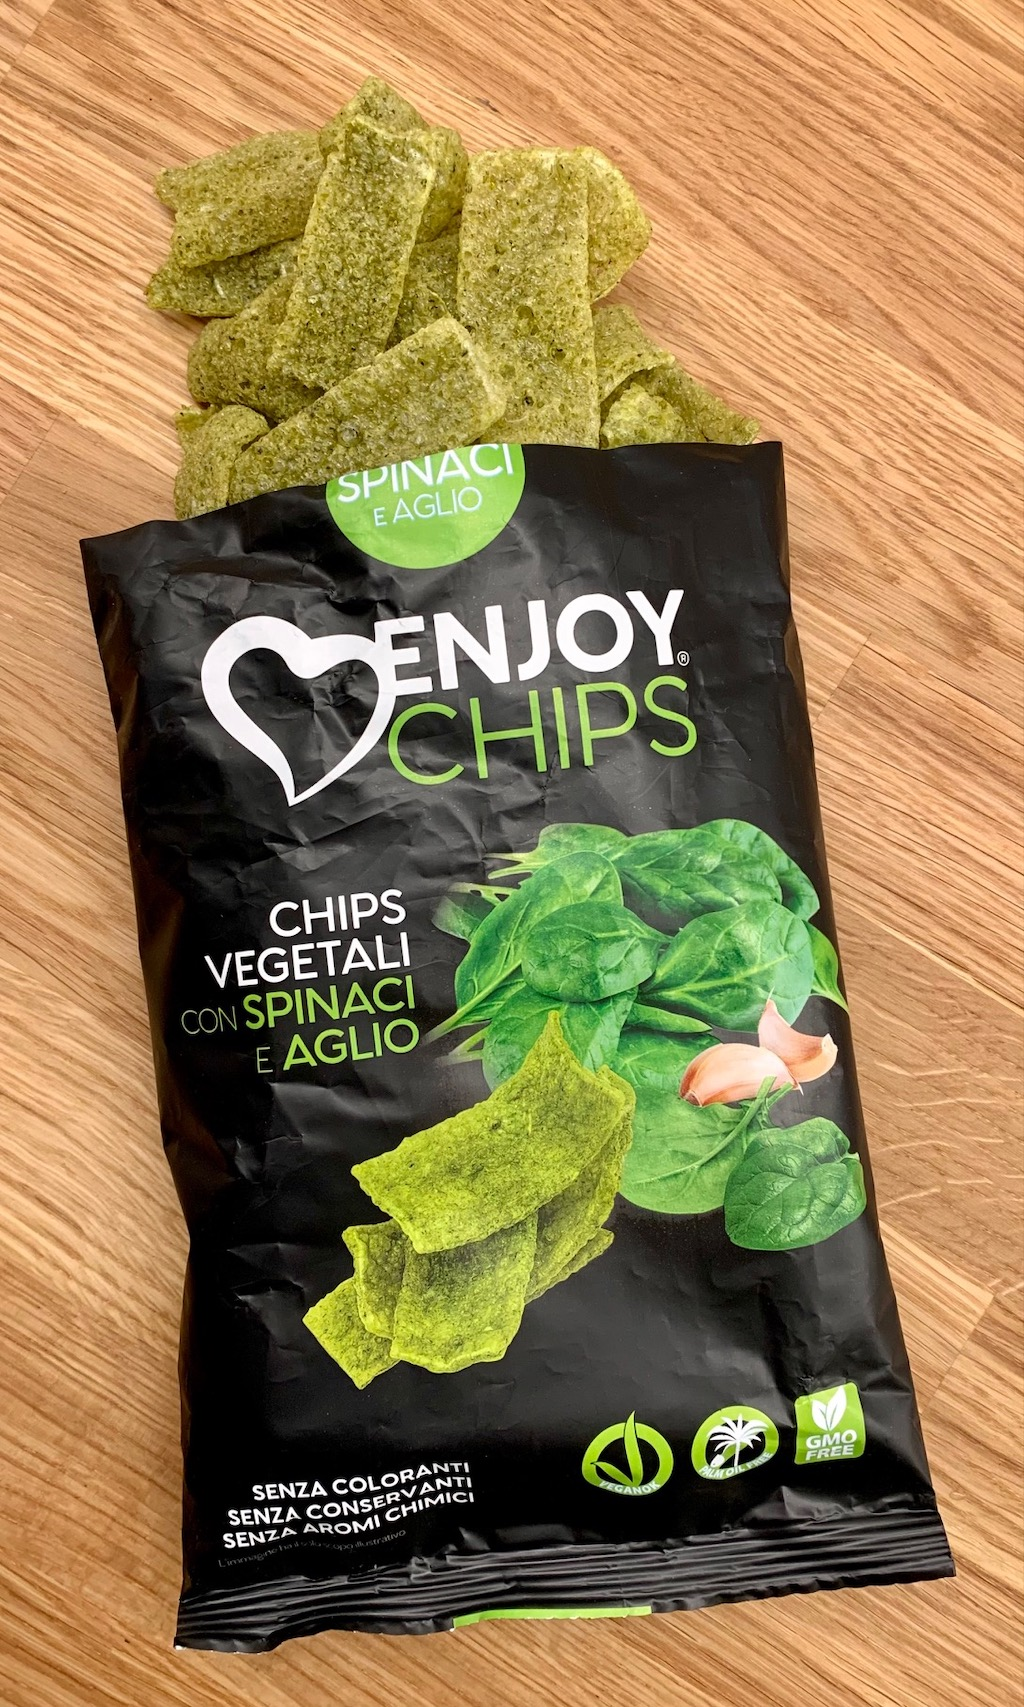 Enjoy Chips Spinaci E Aglio Spinatchips